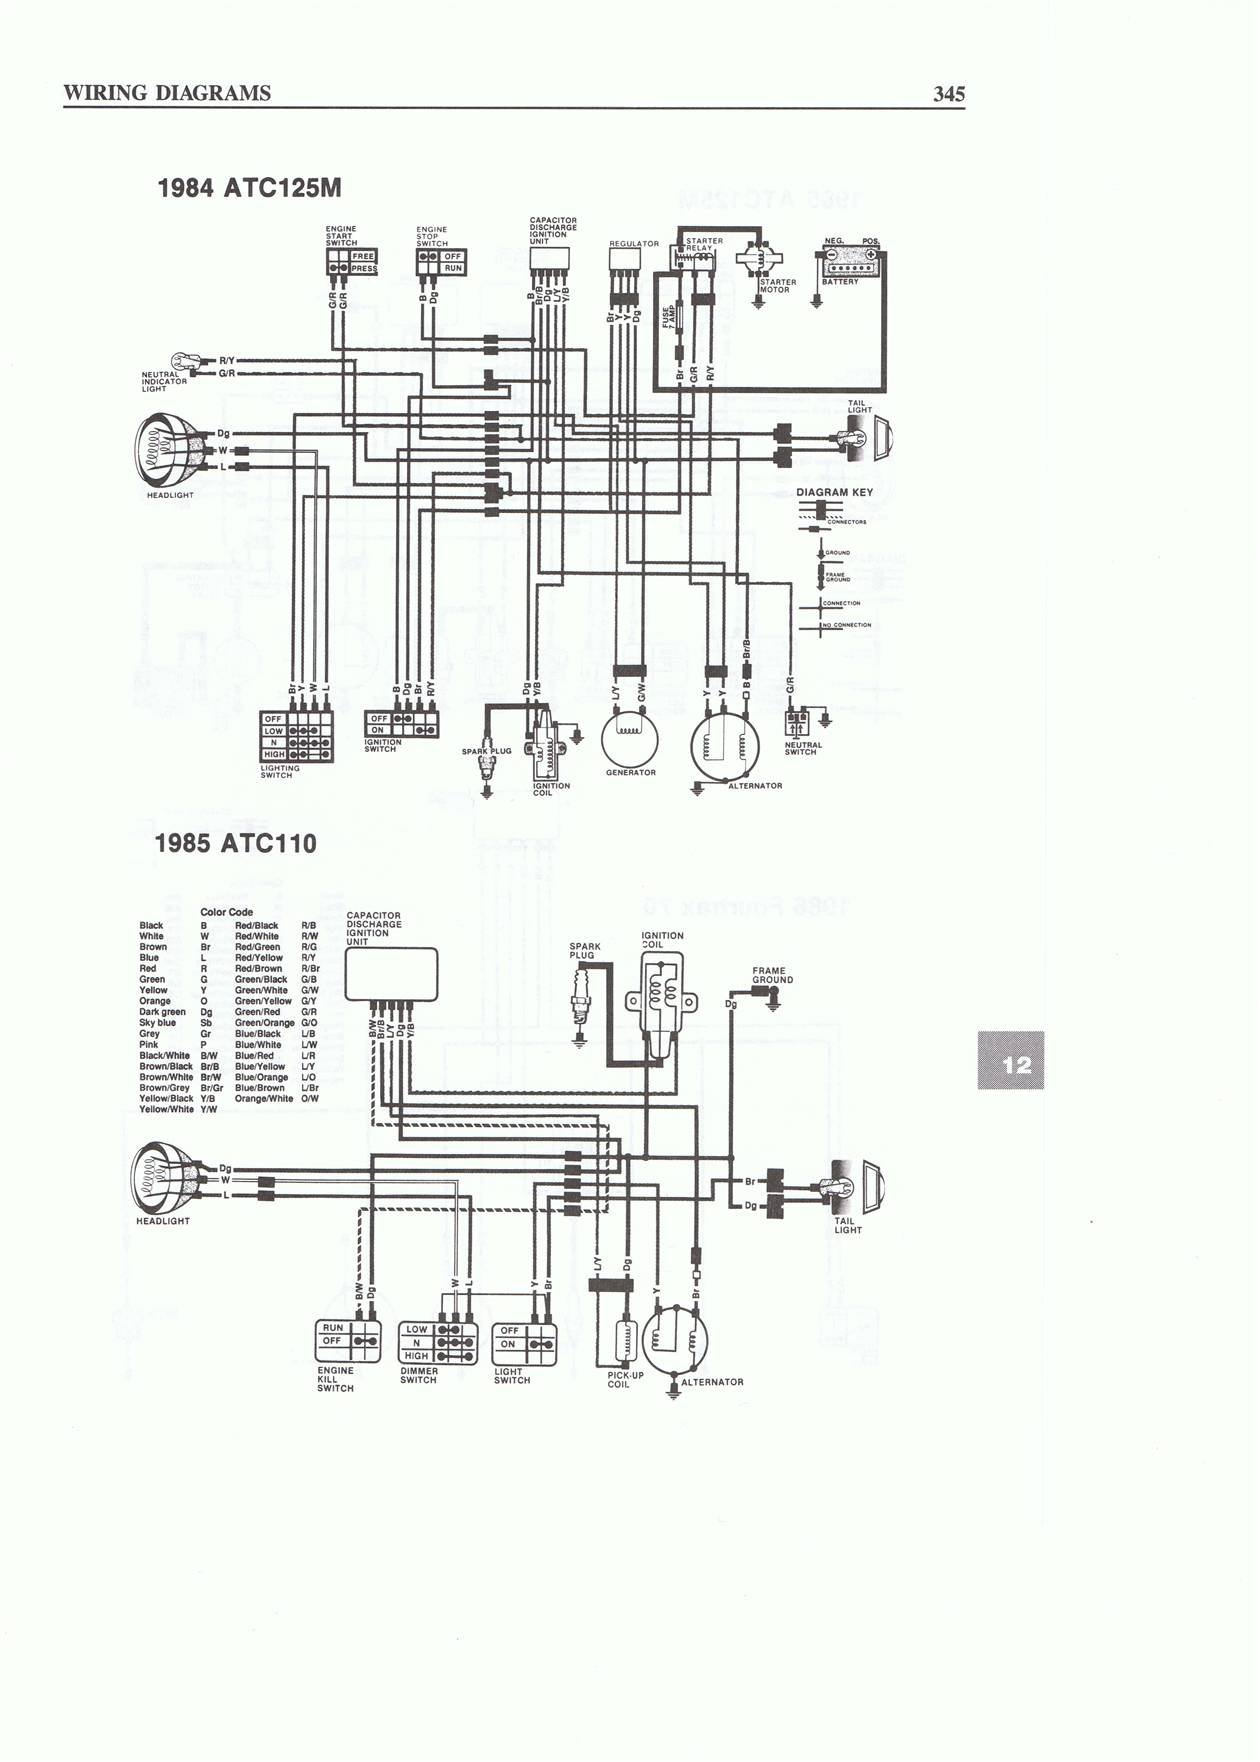 wildfire mini bike wiring diagram razor mini bike wiring diagram